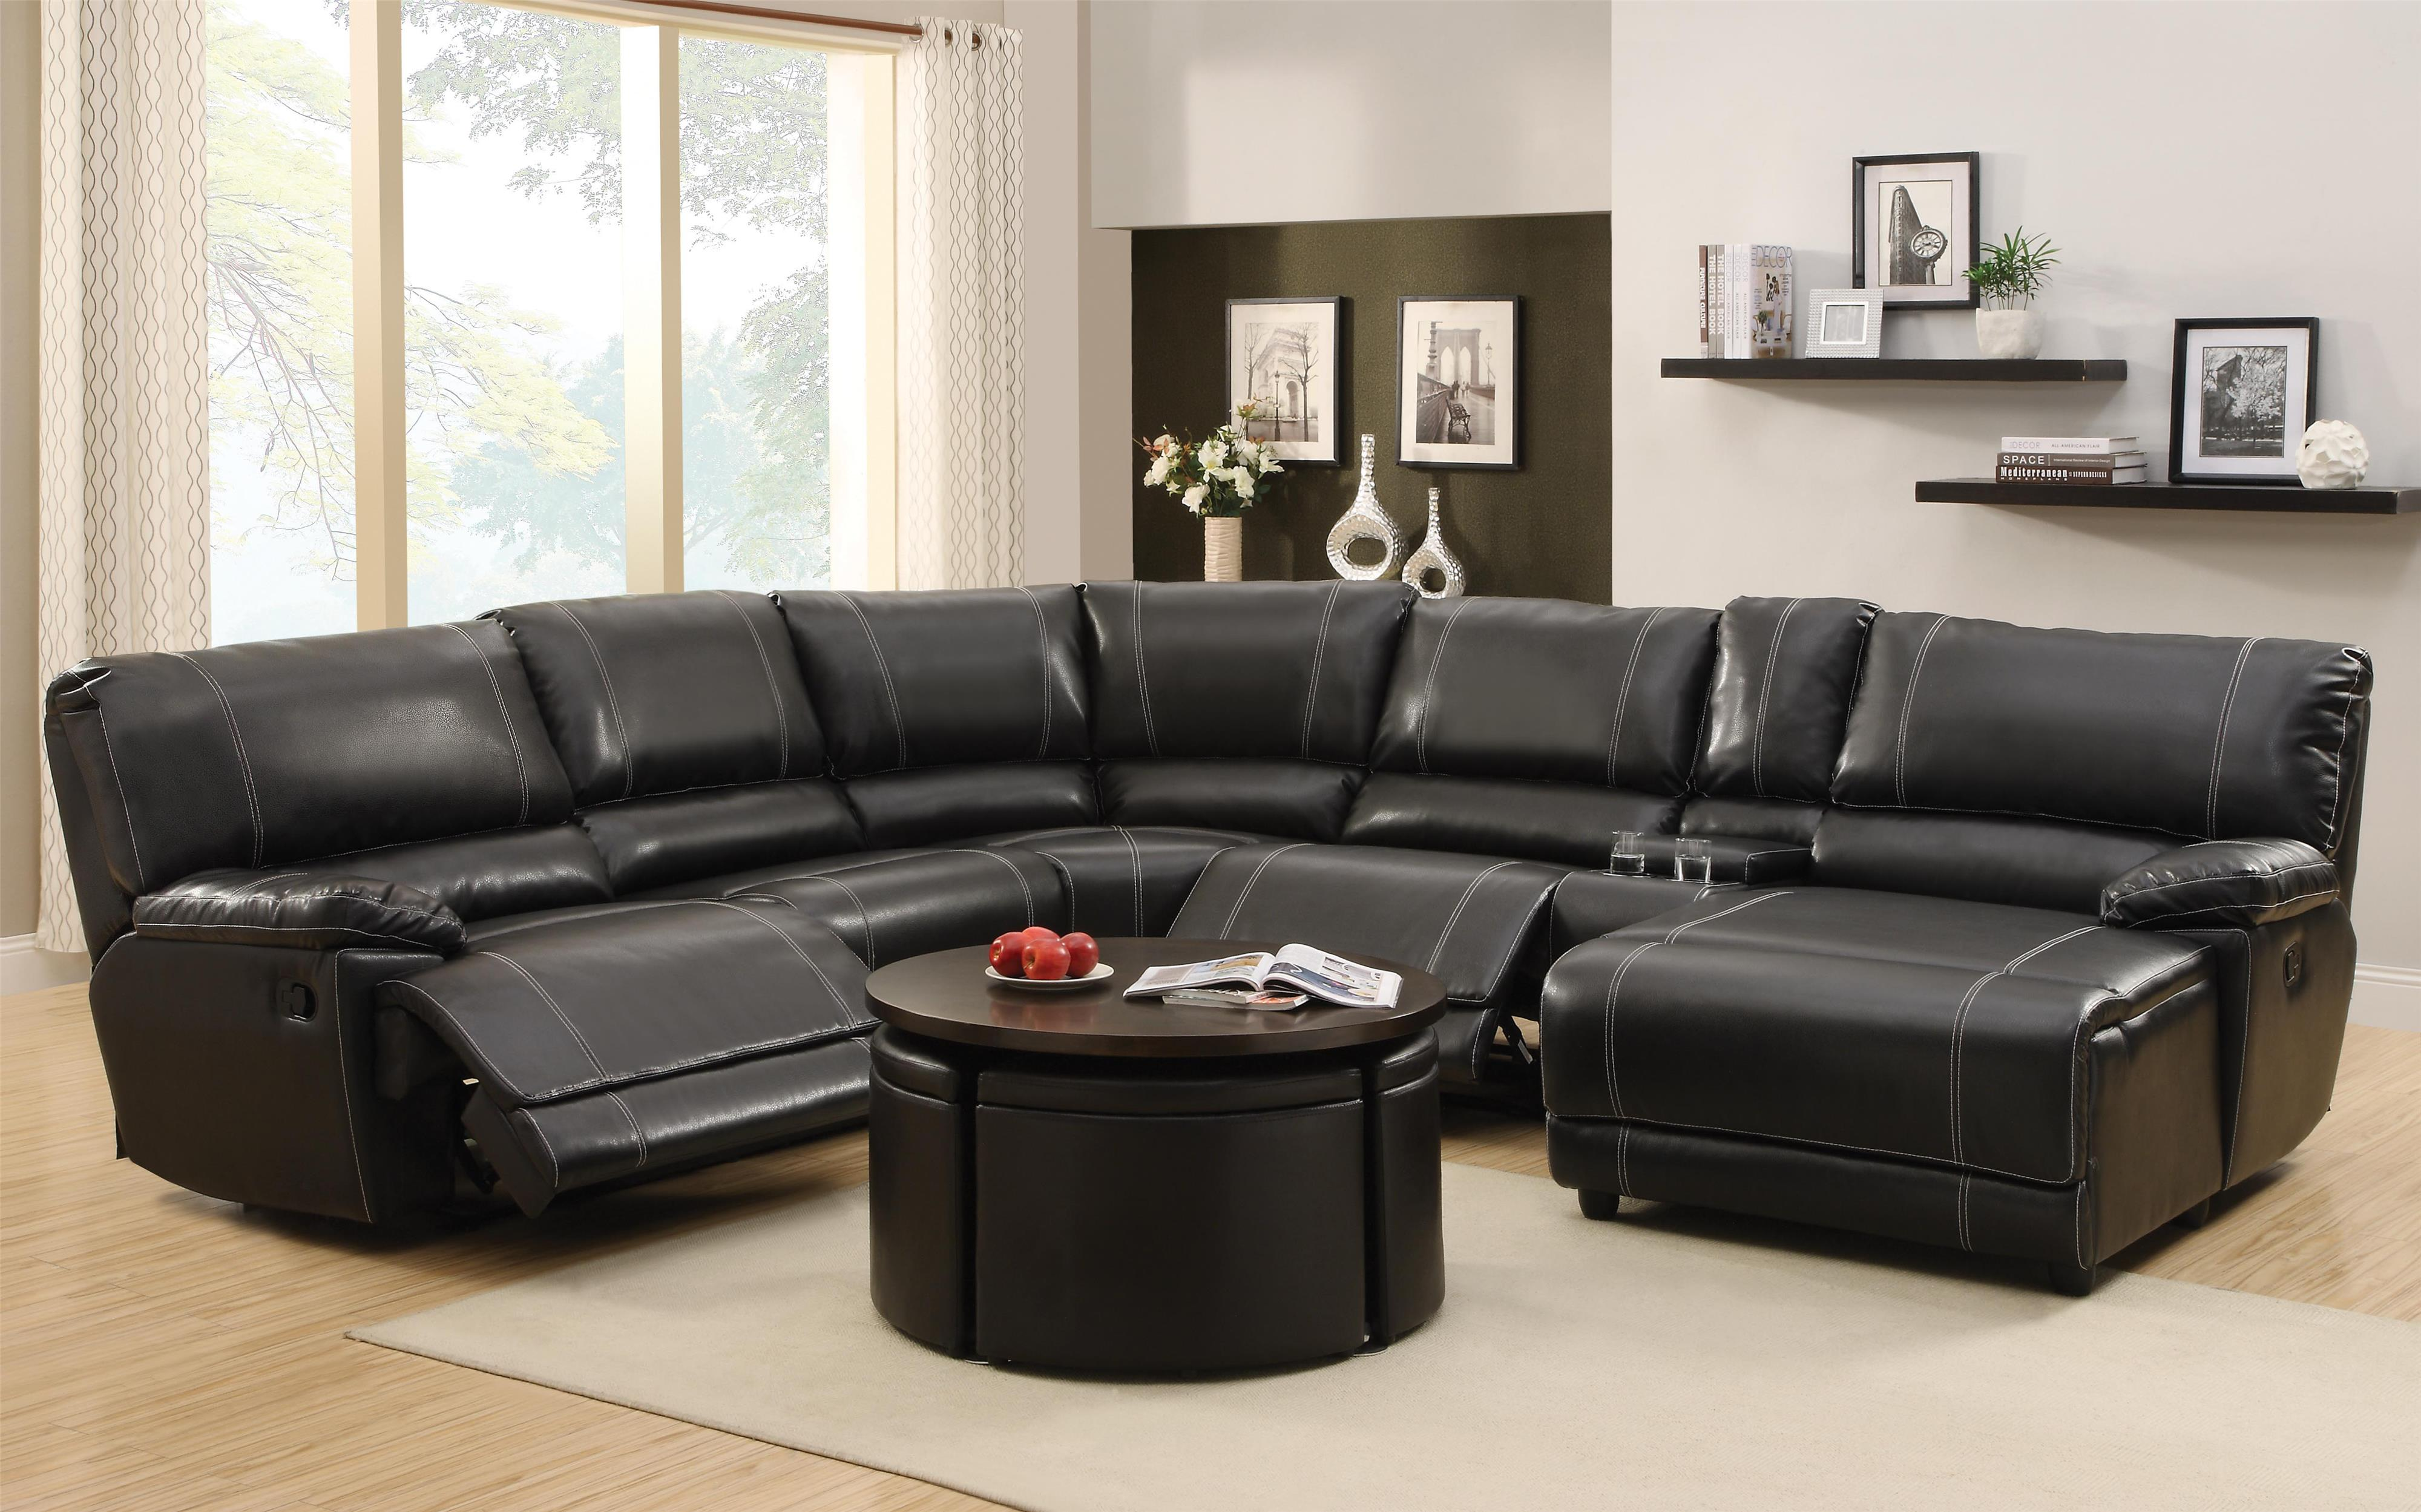 Homelegance Cale Reclining Sectional - Item Number: 9608-LL+CR+AR+CN+RC